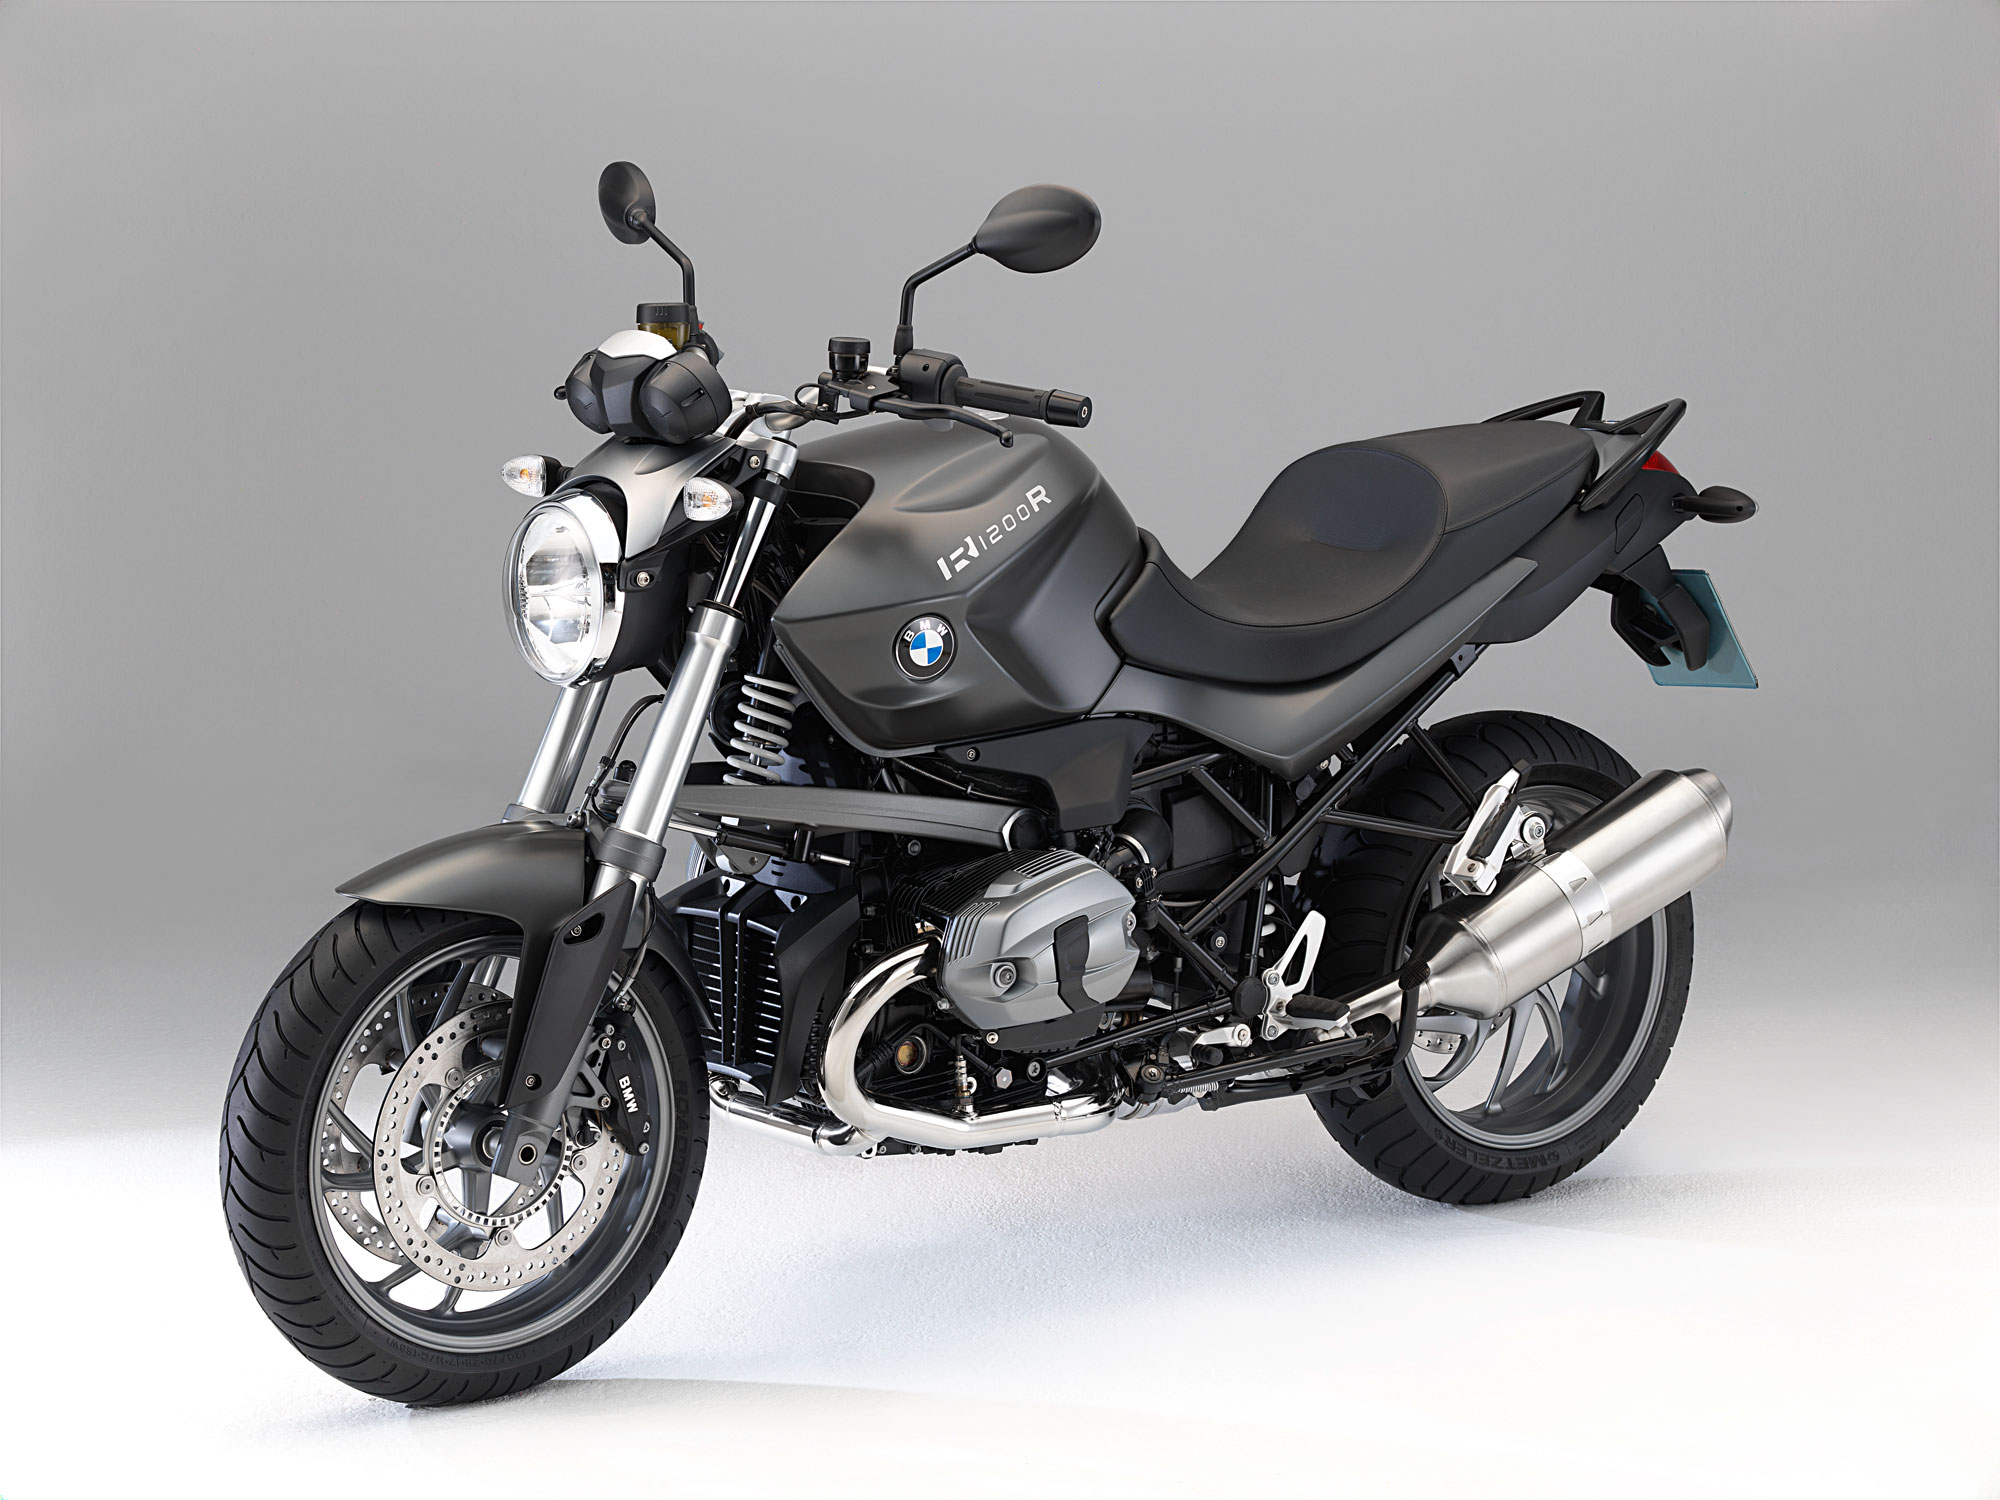 the new bmw r 1200 r the new bmw r 1200 r classic the new dynamic roadsters from bmw motorrad. Black Bedroom Furniture Sets. Home Design Ideas